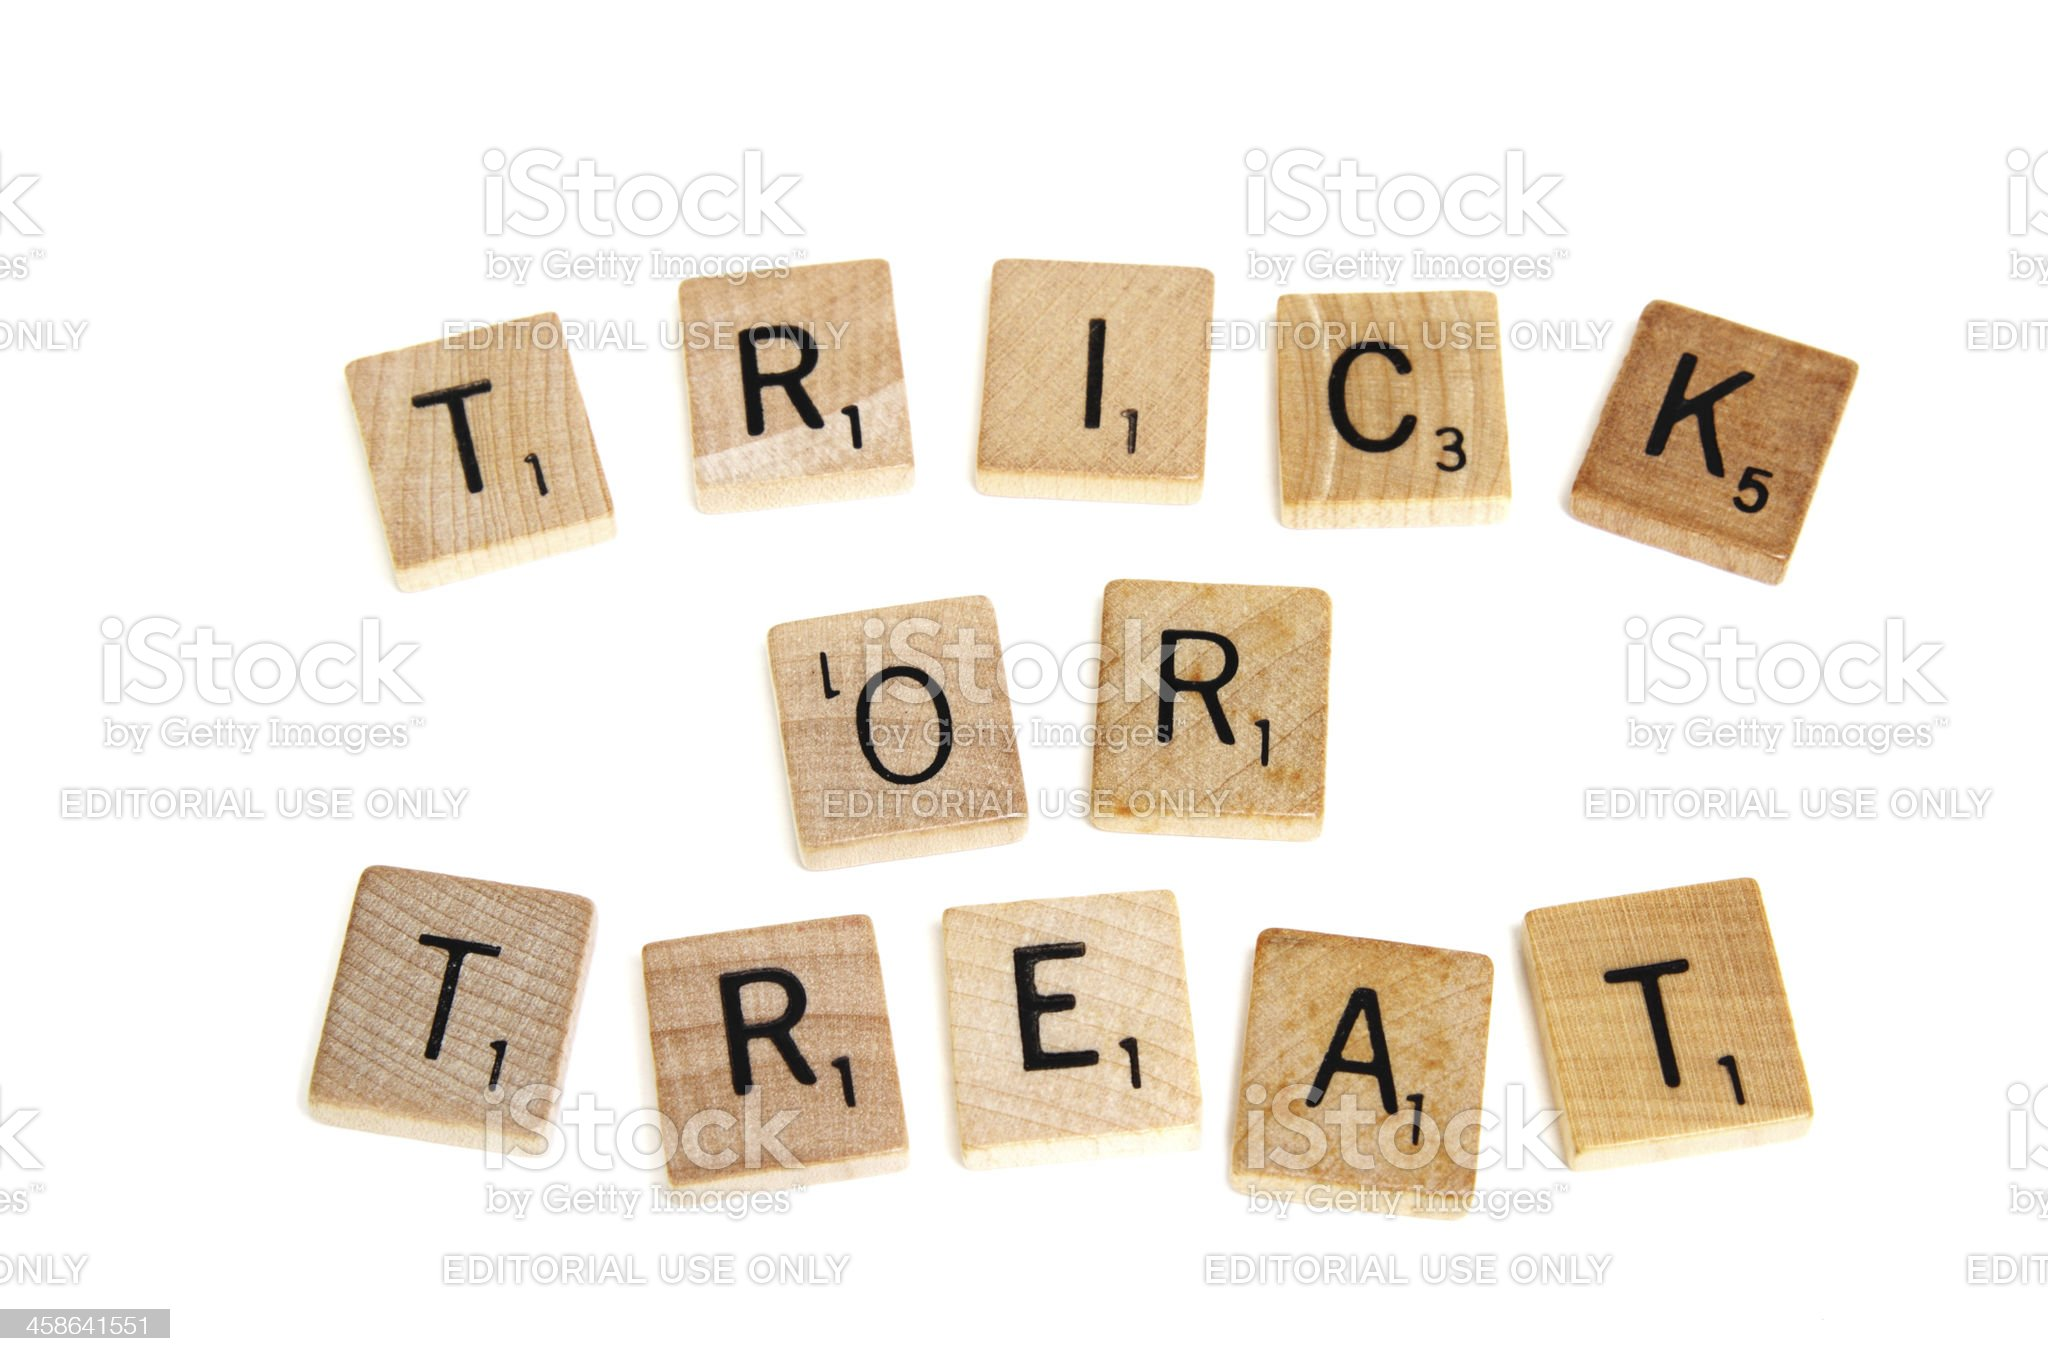 Scrabble wood game tiles spelling Trick or Treat royalty-free stock photo